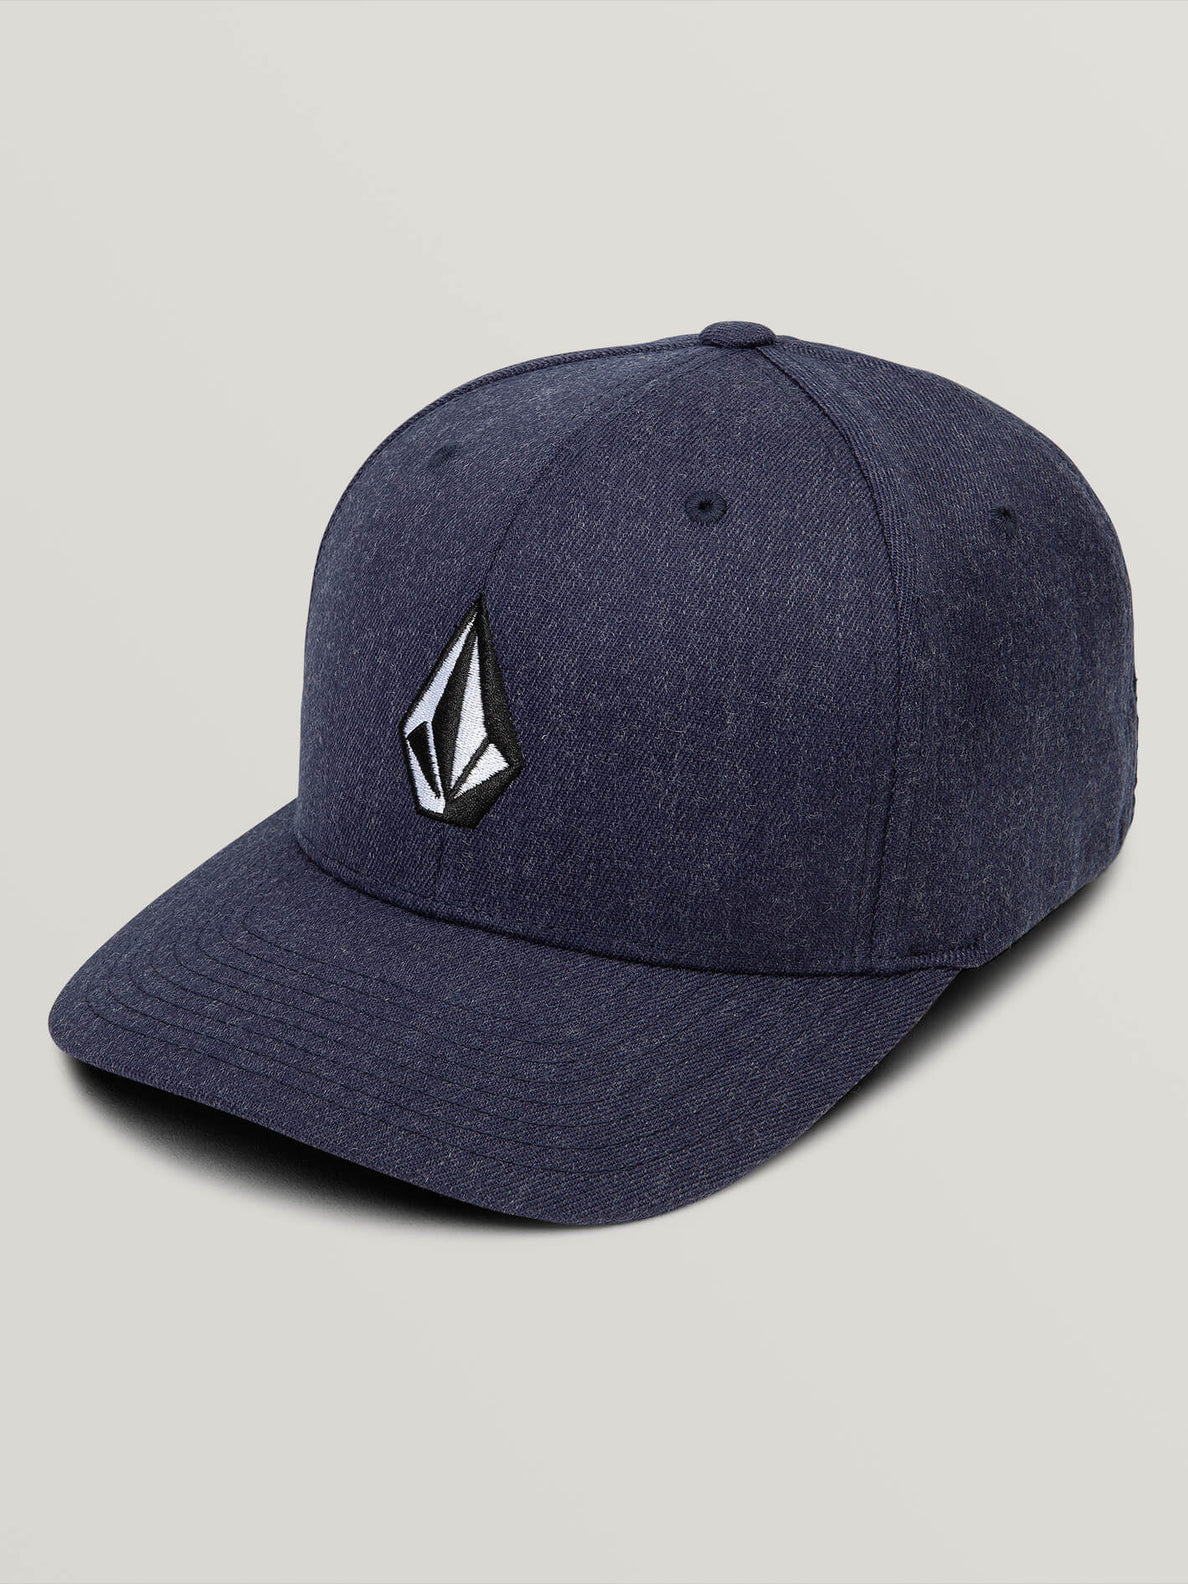 Full stone xfit hat navy heather volcom jpg 1188x1584 Volcom full stone hats d5fc010af12b